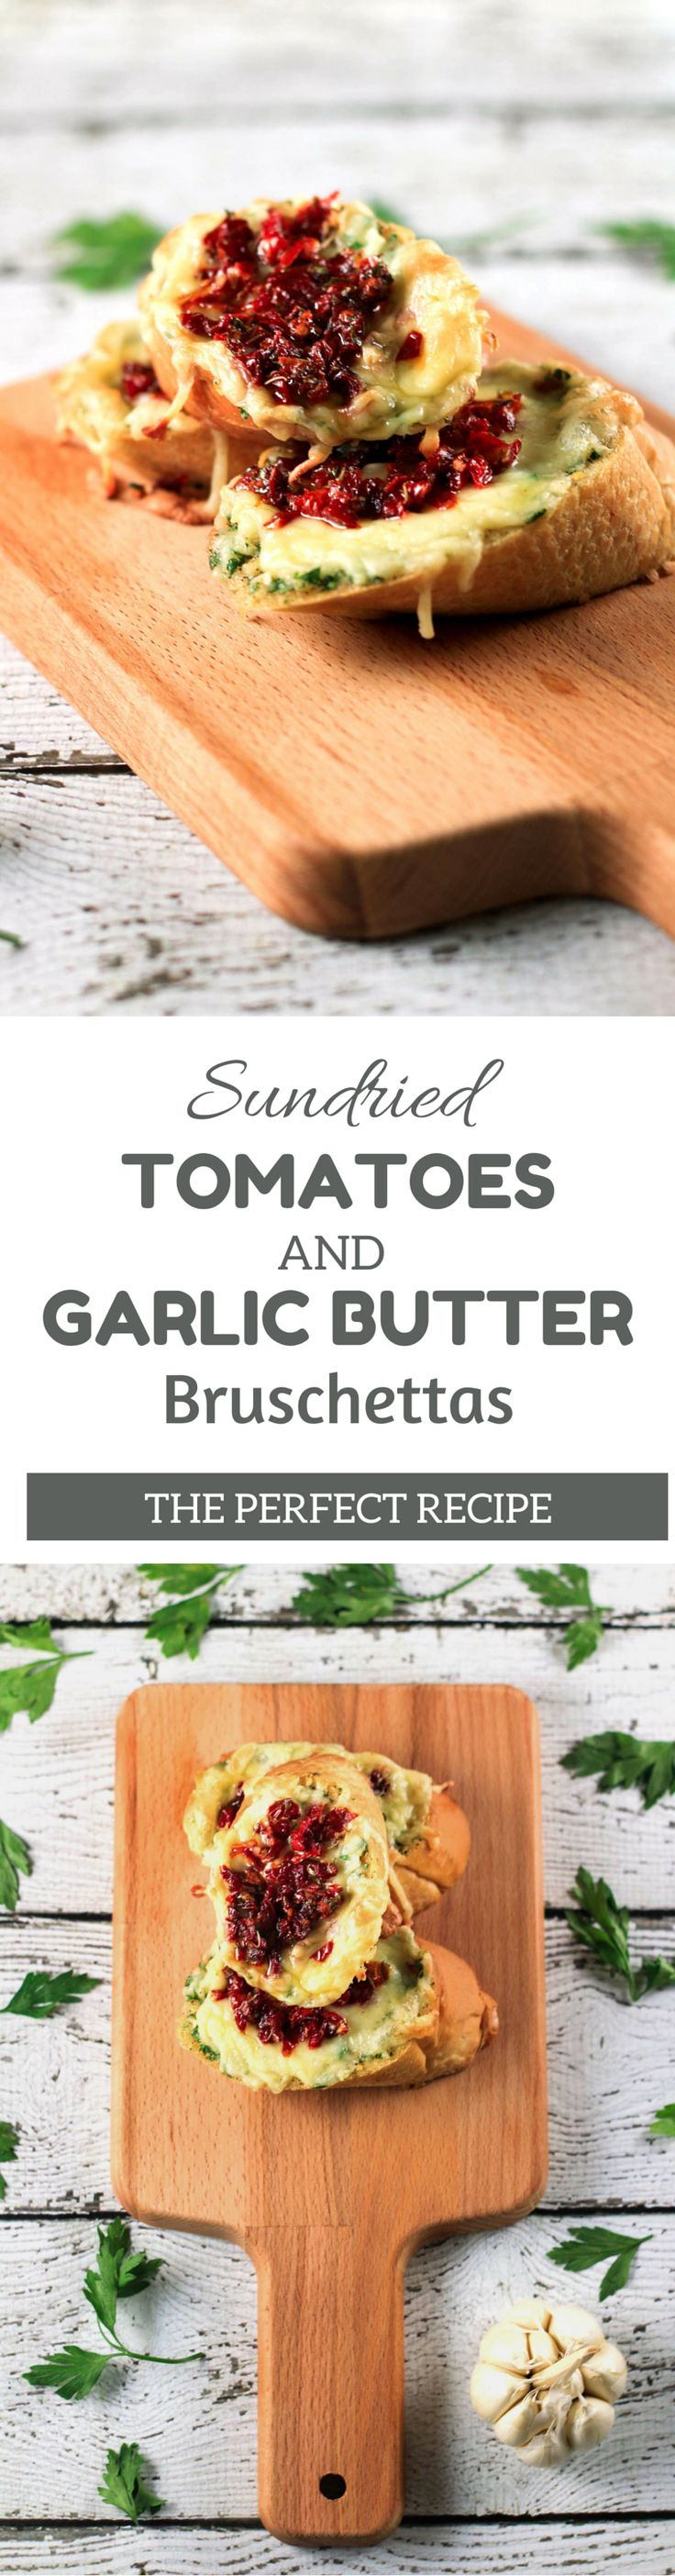 This recipe is SO easy to make! It even shows you how to make sundried tomatoes at home - YUM! Prep in advance and have these all week!! | ScrambledChefs.com